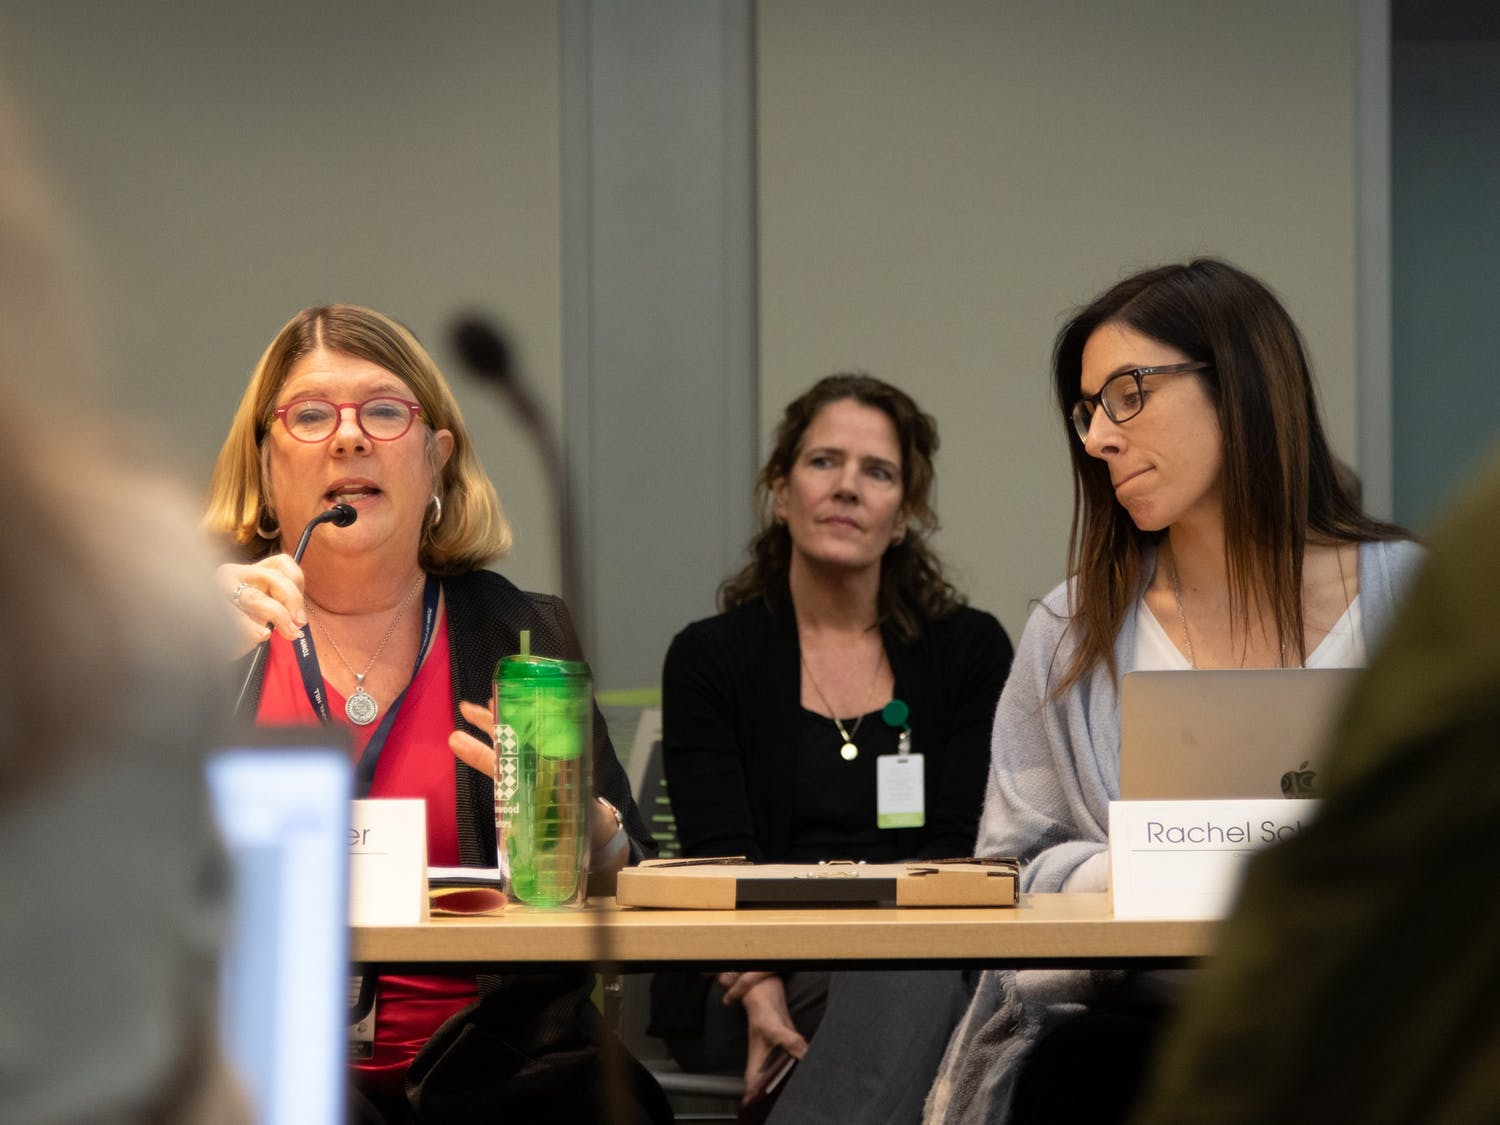 Chapel Hill Mayor Pam Hemminger speaks alongside council member Rachel Schaevitz during a Chapel Hill Town Council Work Session at the Chapel Hill Public Library on Wednesday, Feb.12, 2020.